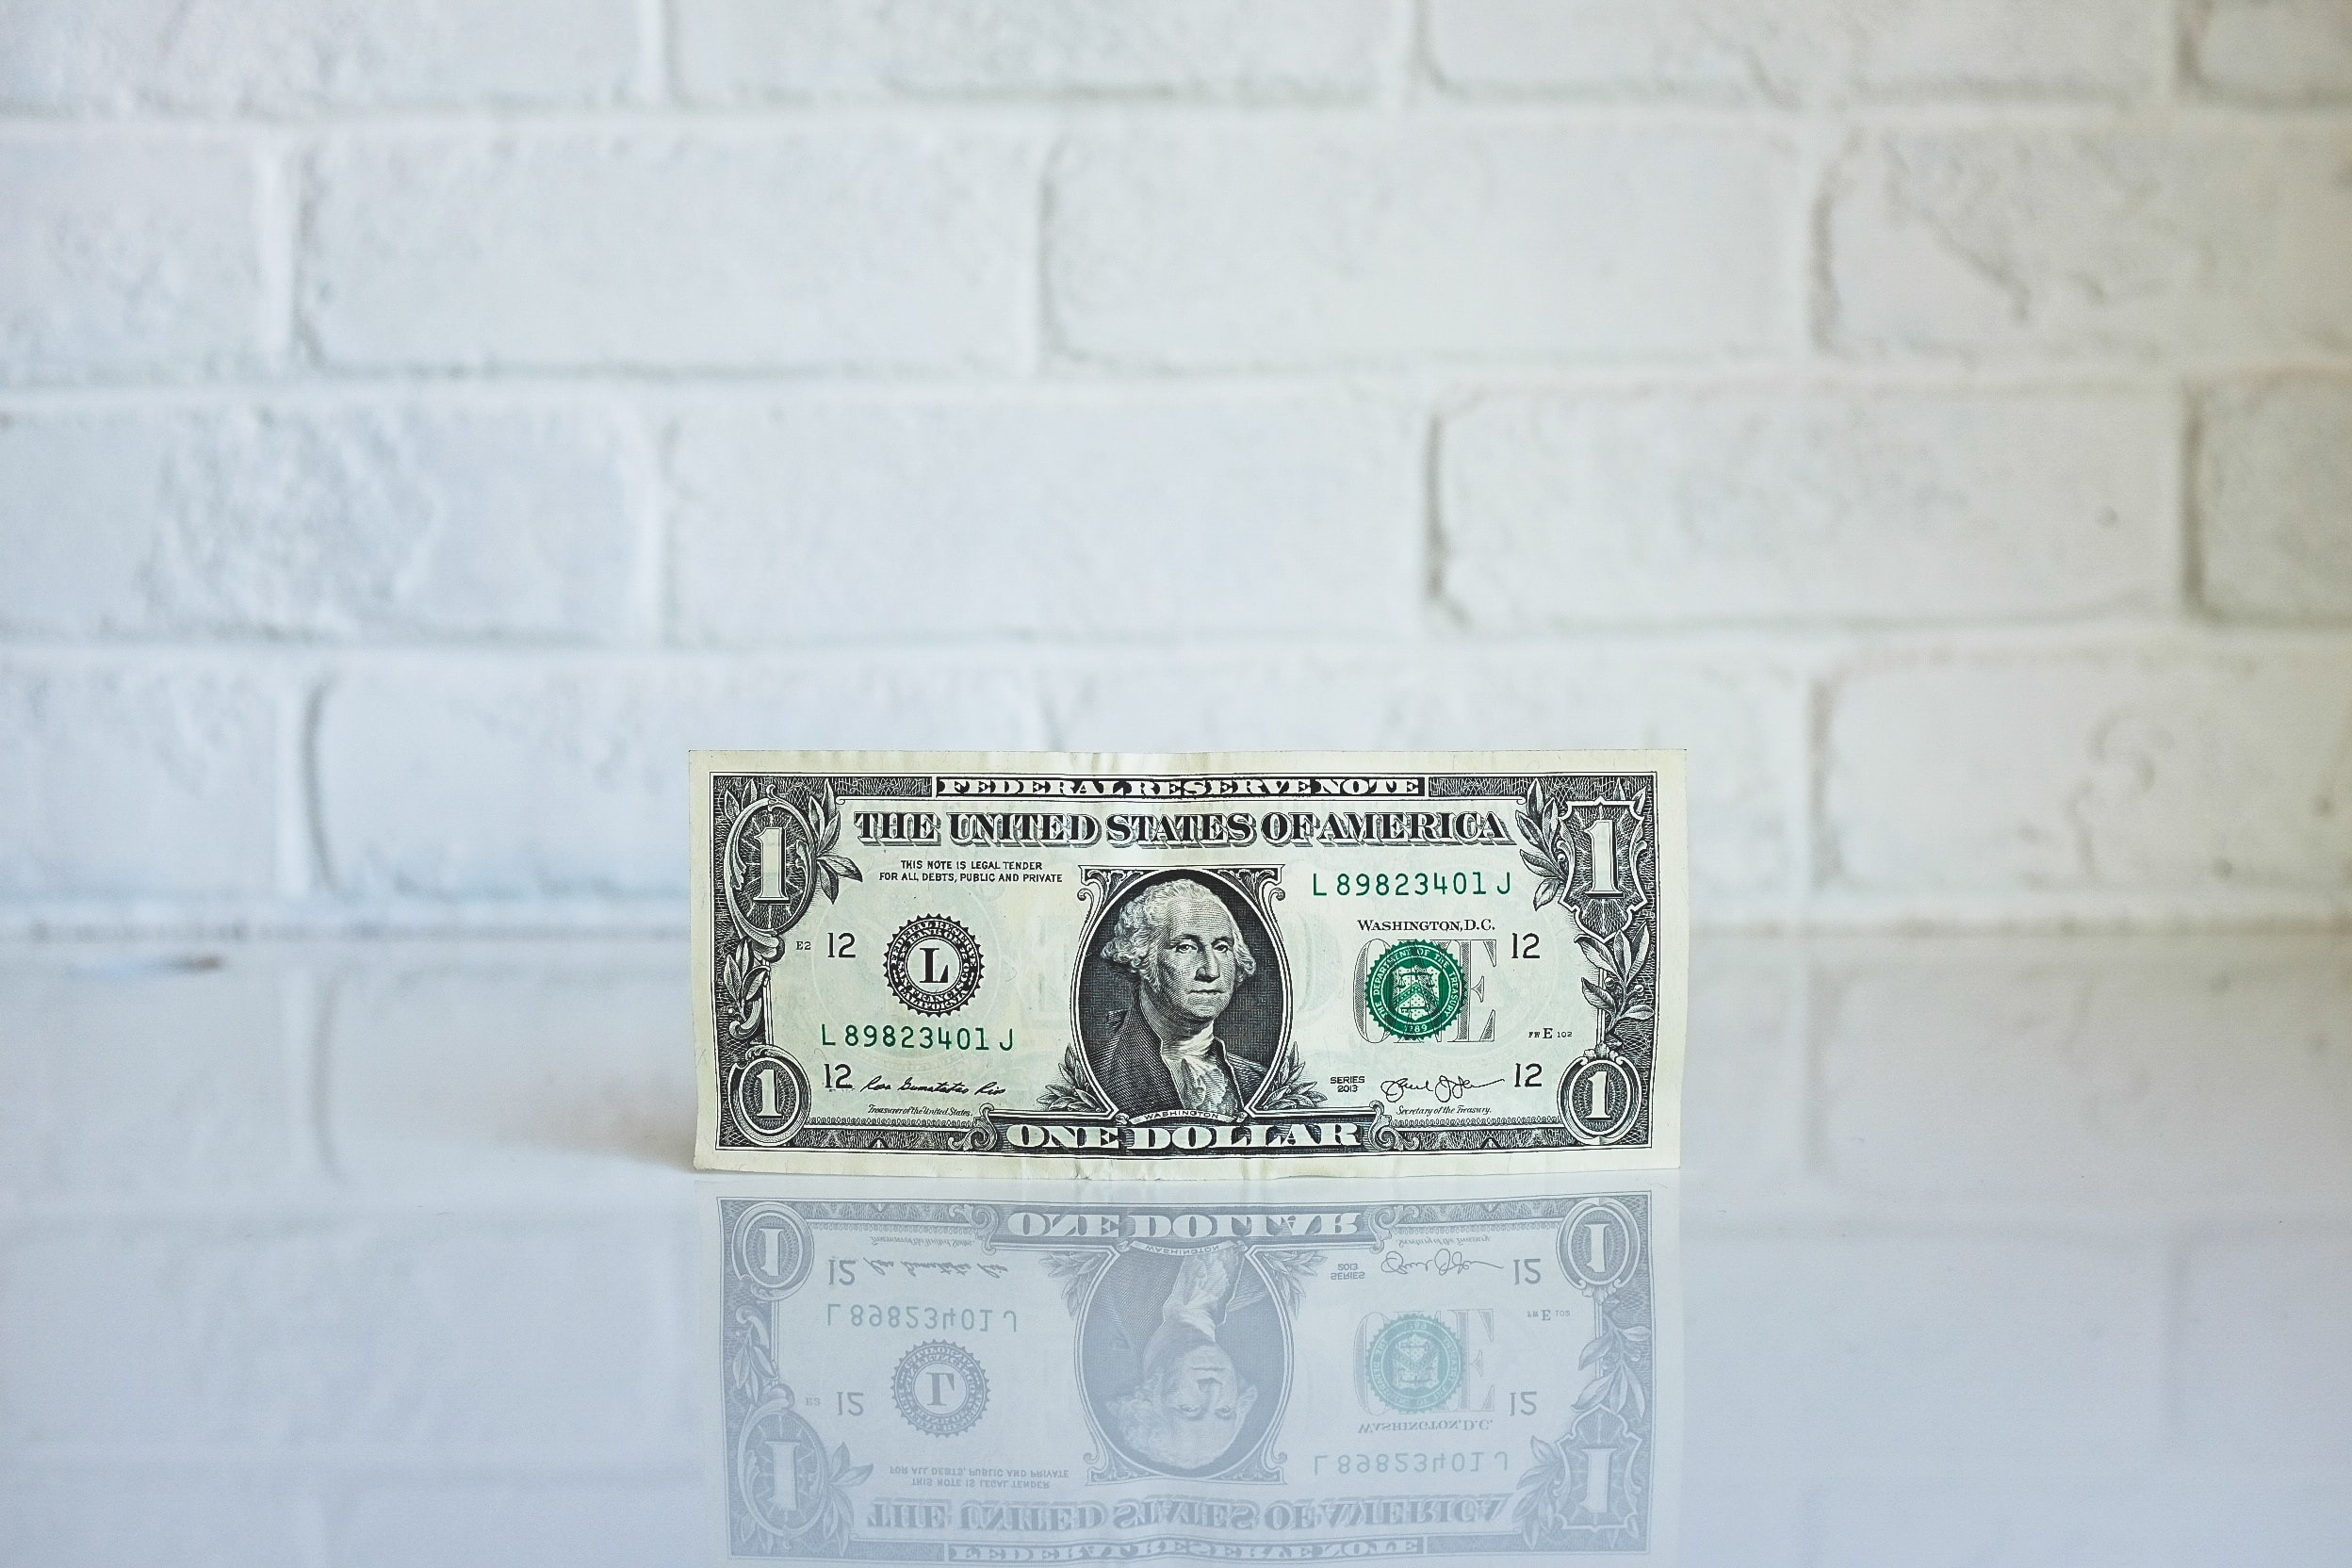 Image of a U.S. dollar bill